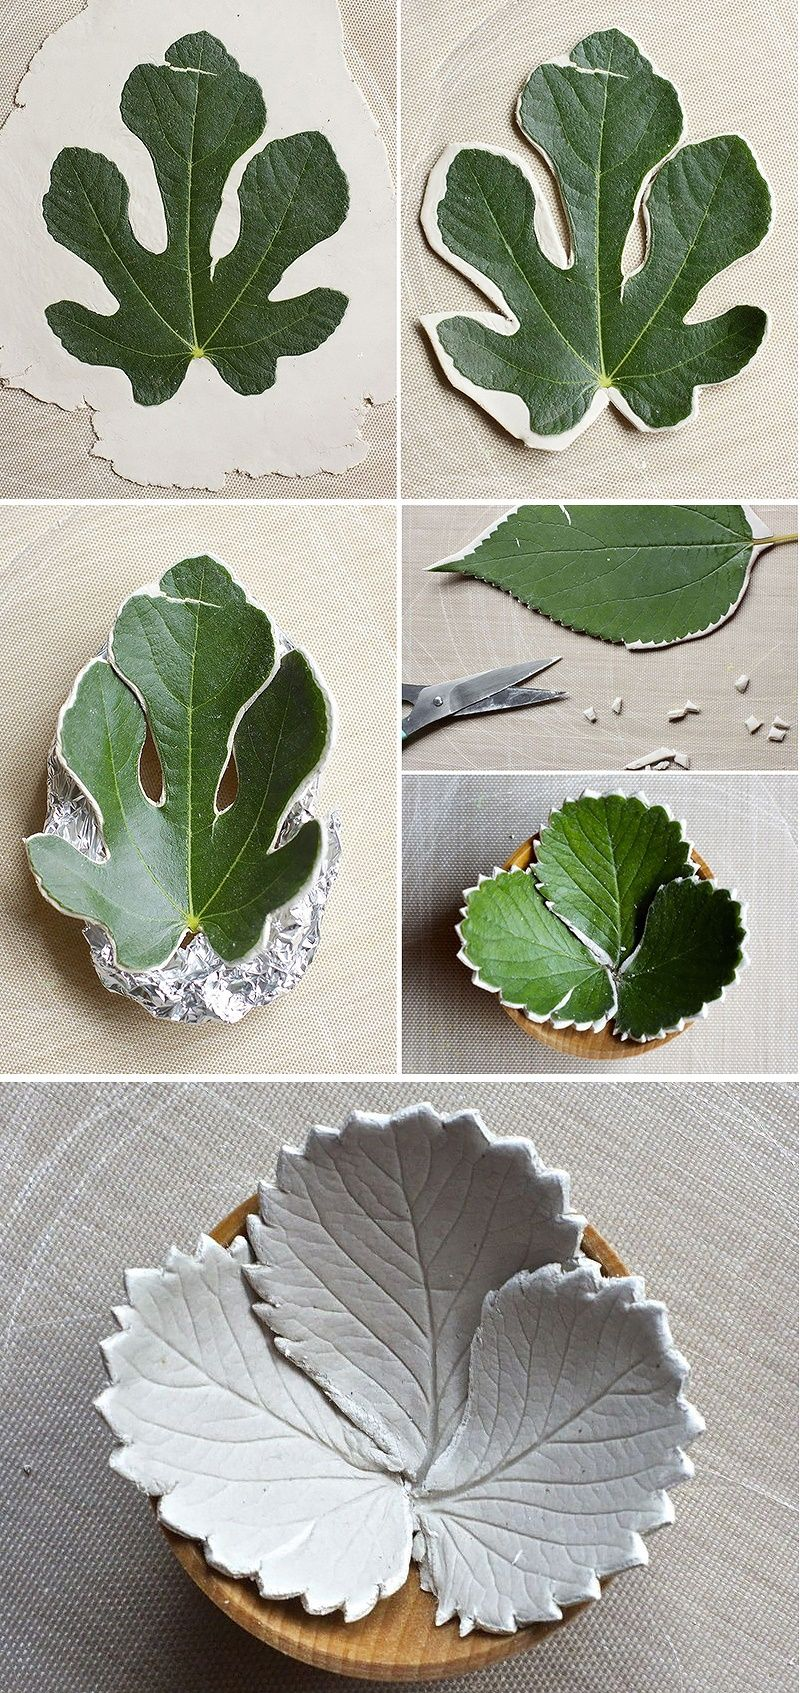 leaf bowls air dry clay and clay leaf bowls from air dry clay find many recipes for the clay here solutioingenieria Images